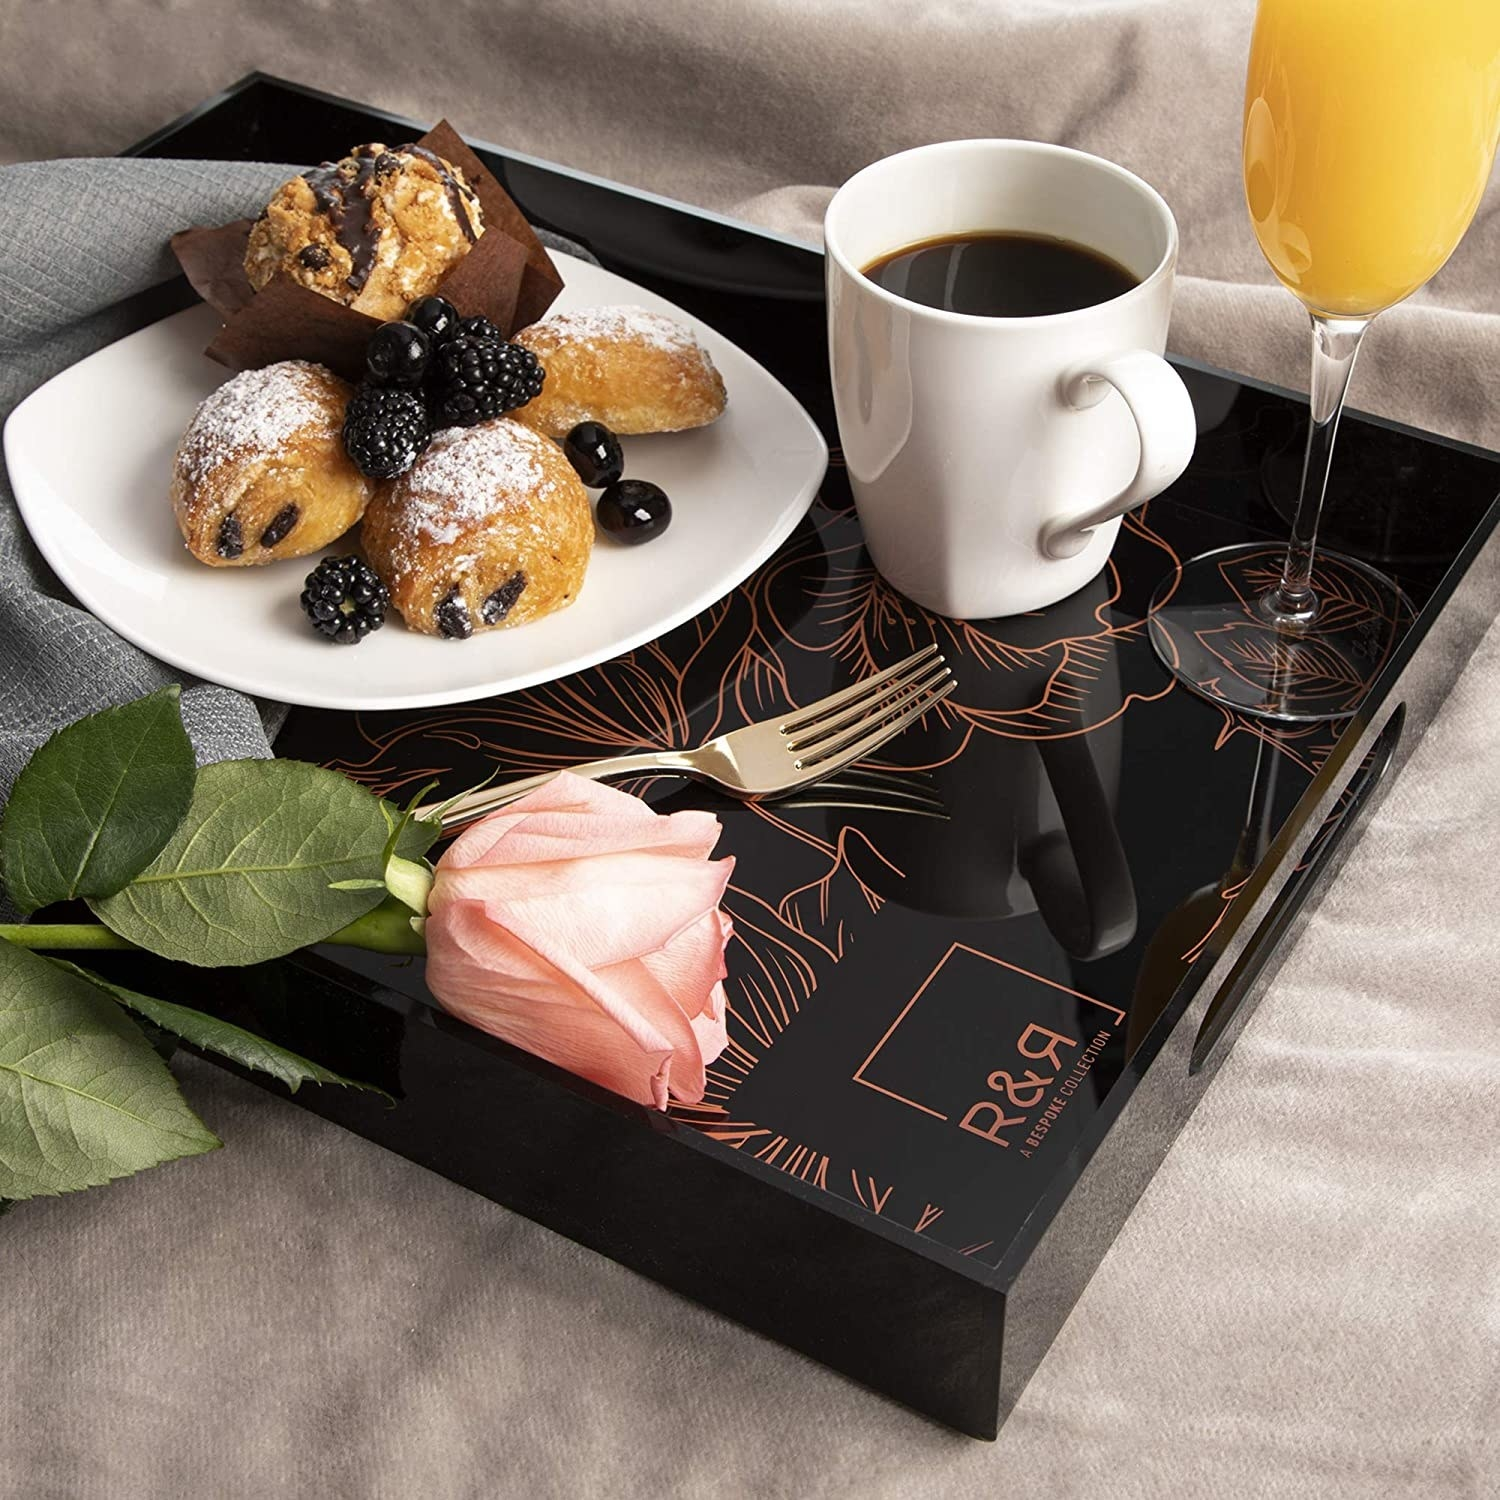 The black floral acrylic tray on a bed with an elegant breakfast spread